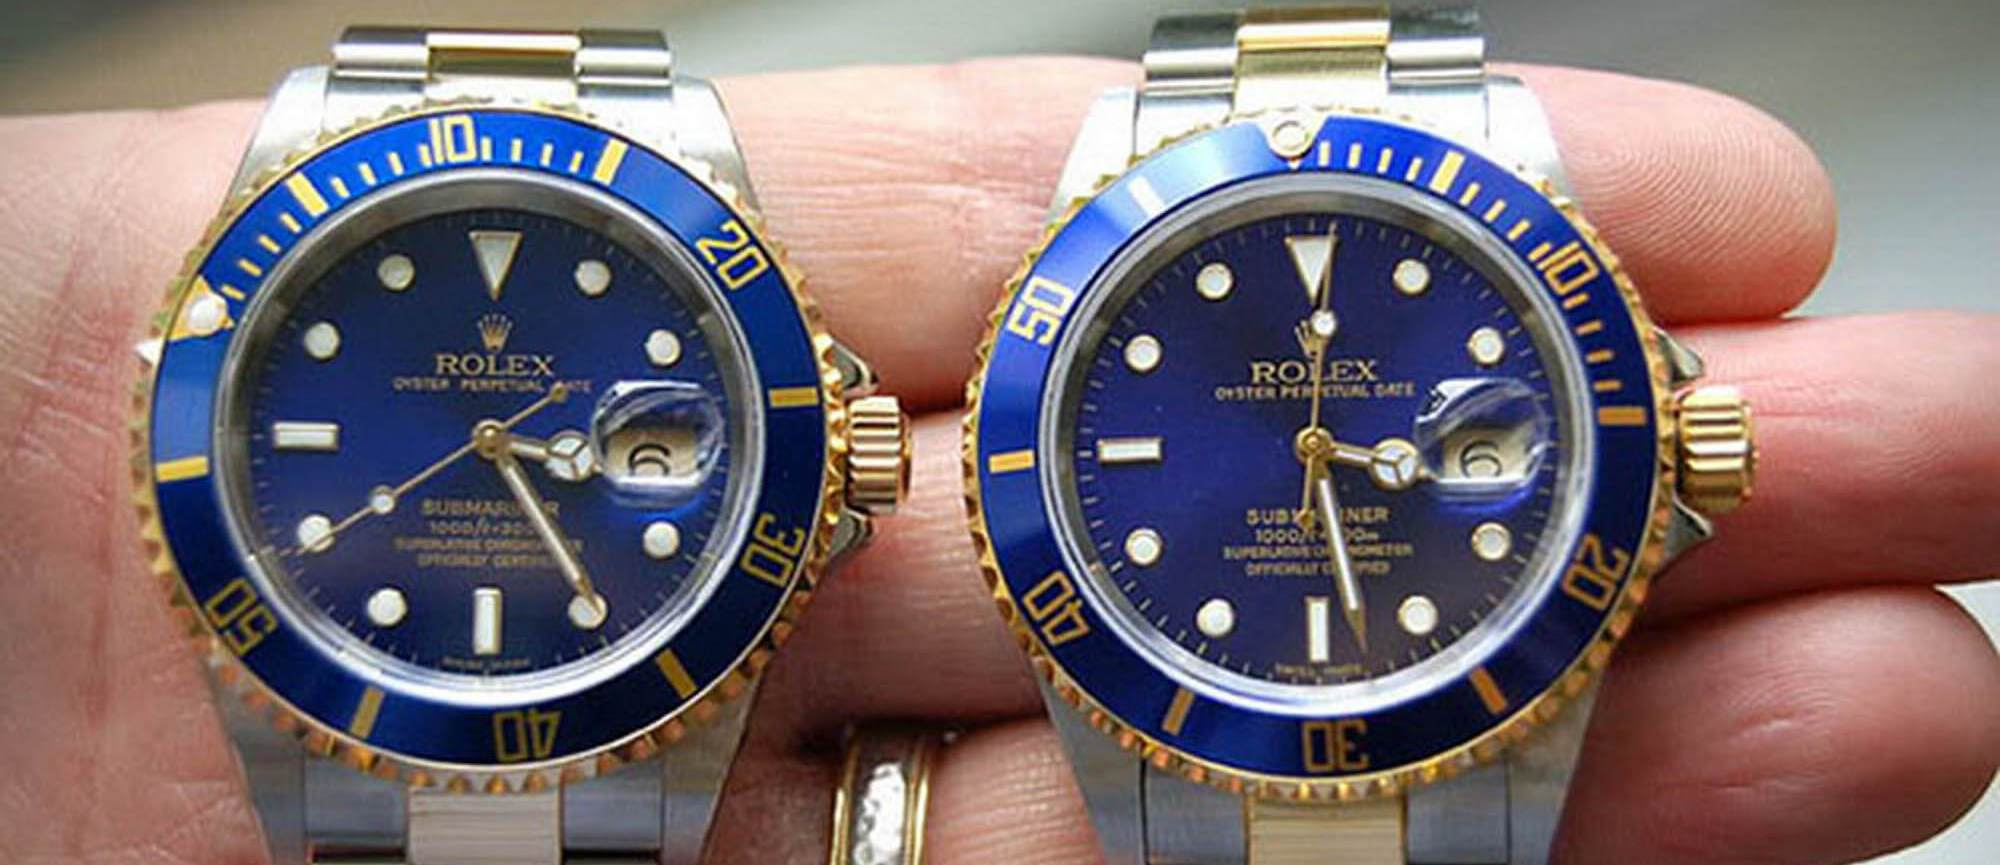 How to Tell Between a Real & Fake Rolex